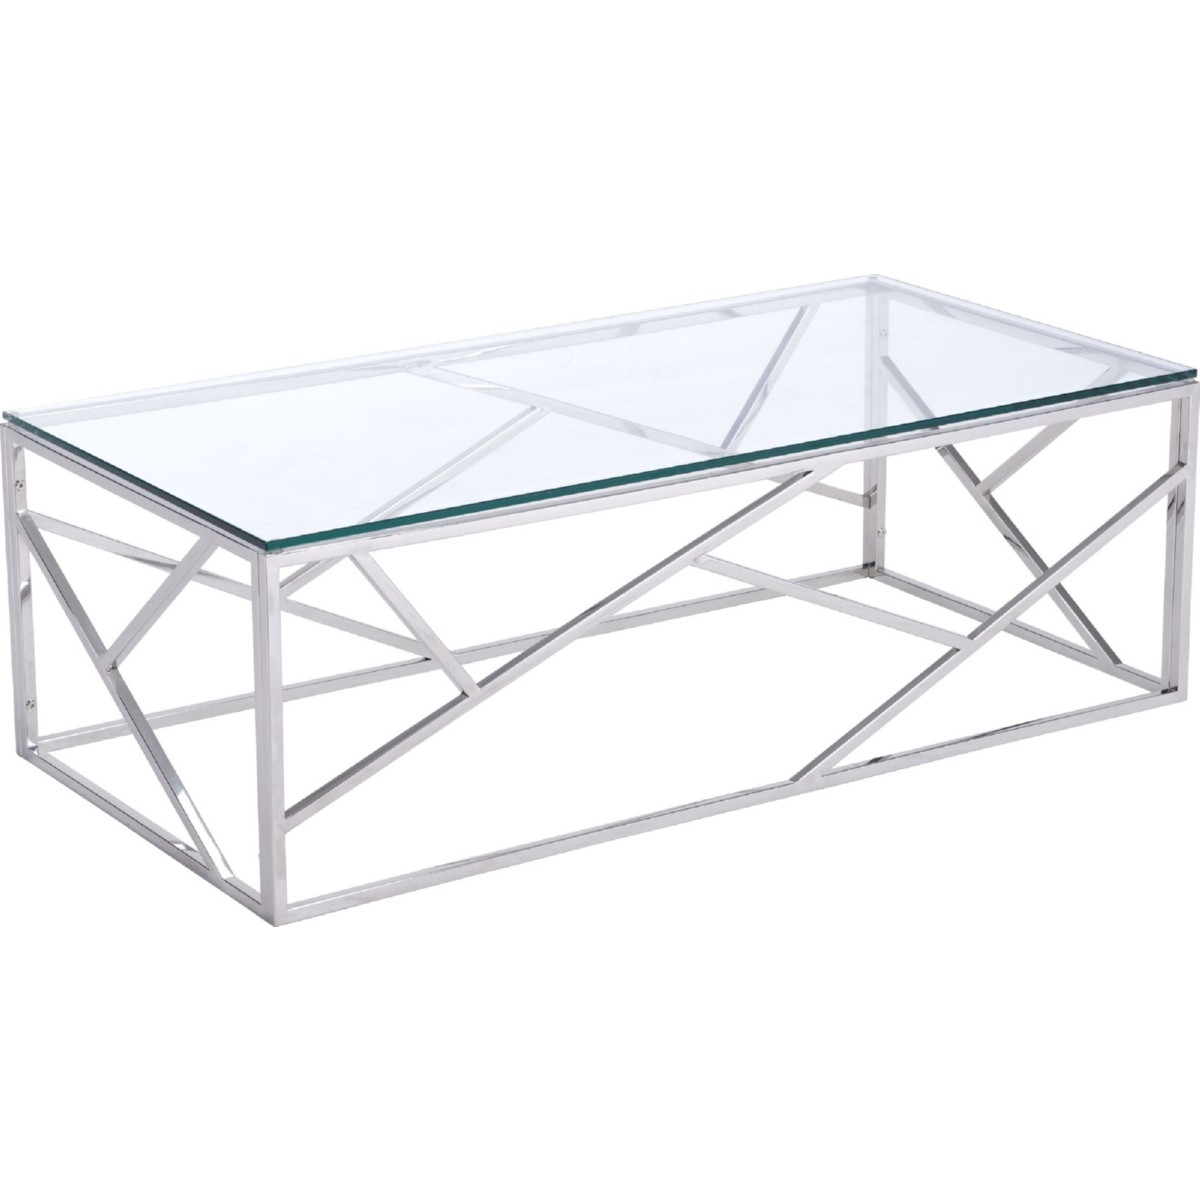 Zuo Modern Coffee Table Zuo Modern 100179 Cage Coffee Table In Polished Stainless Steel W